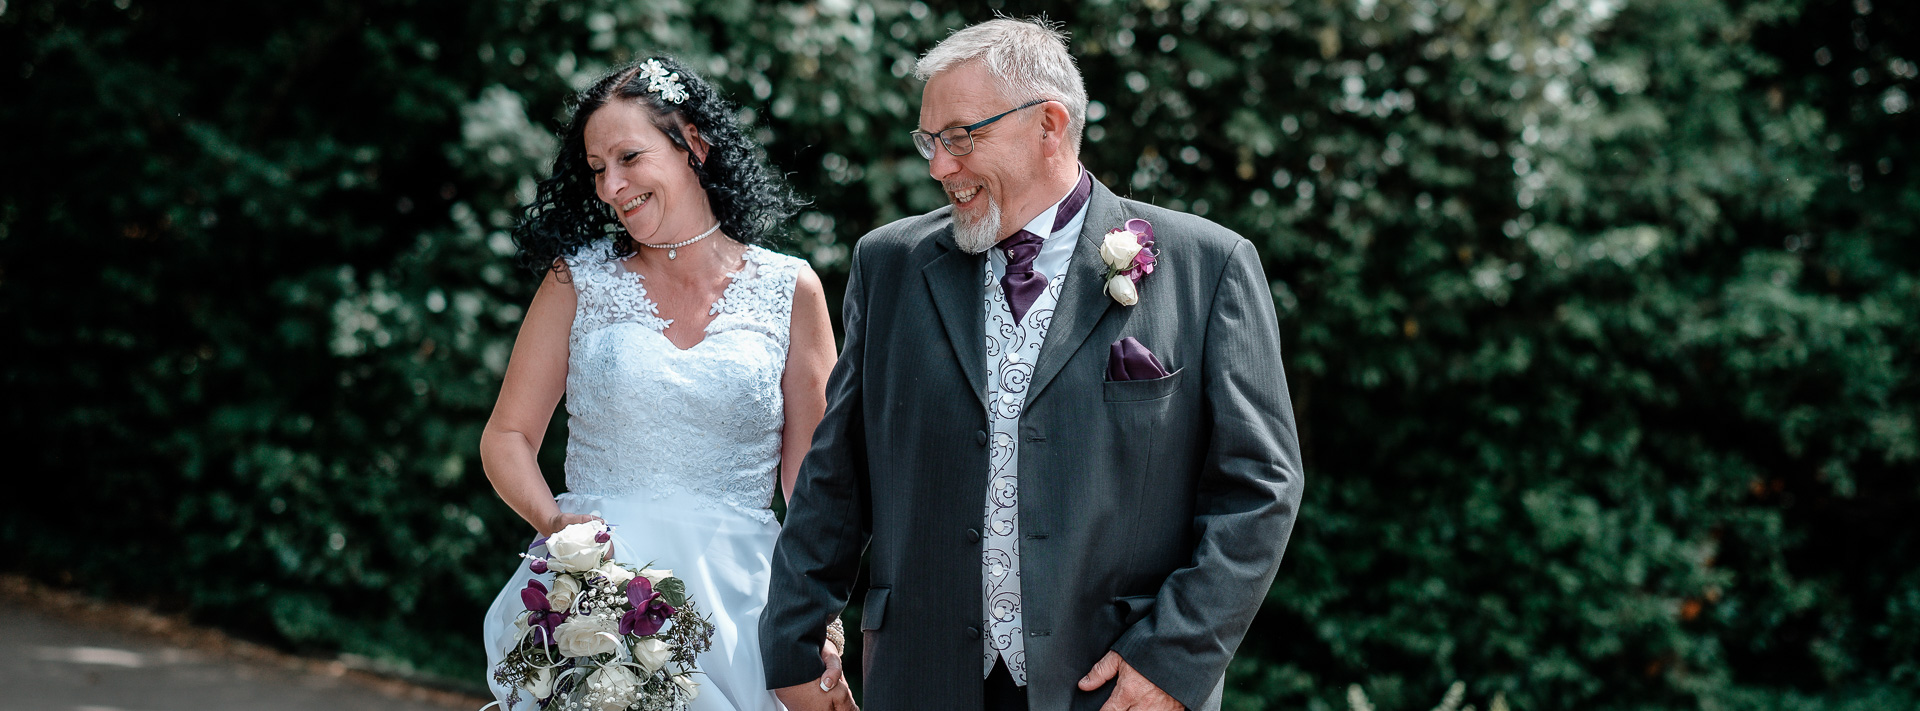 Linda and Andy's Wedding at Belstead Brook Hotel